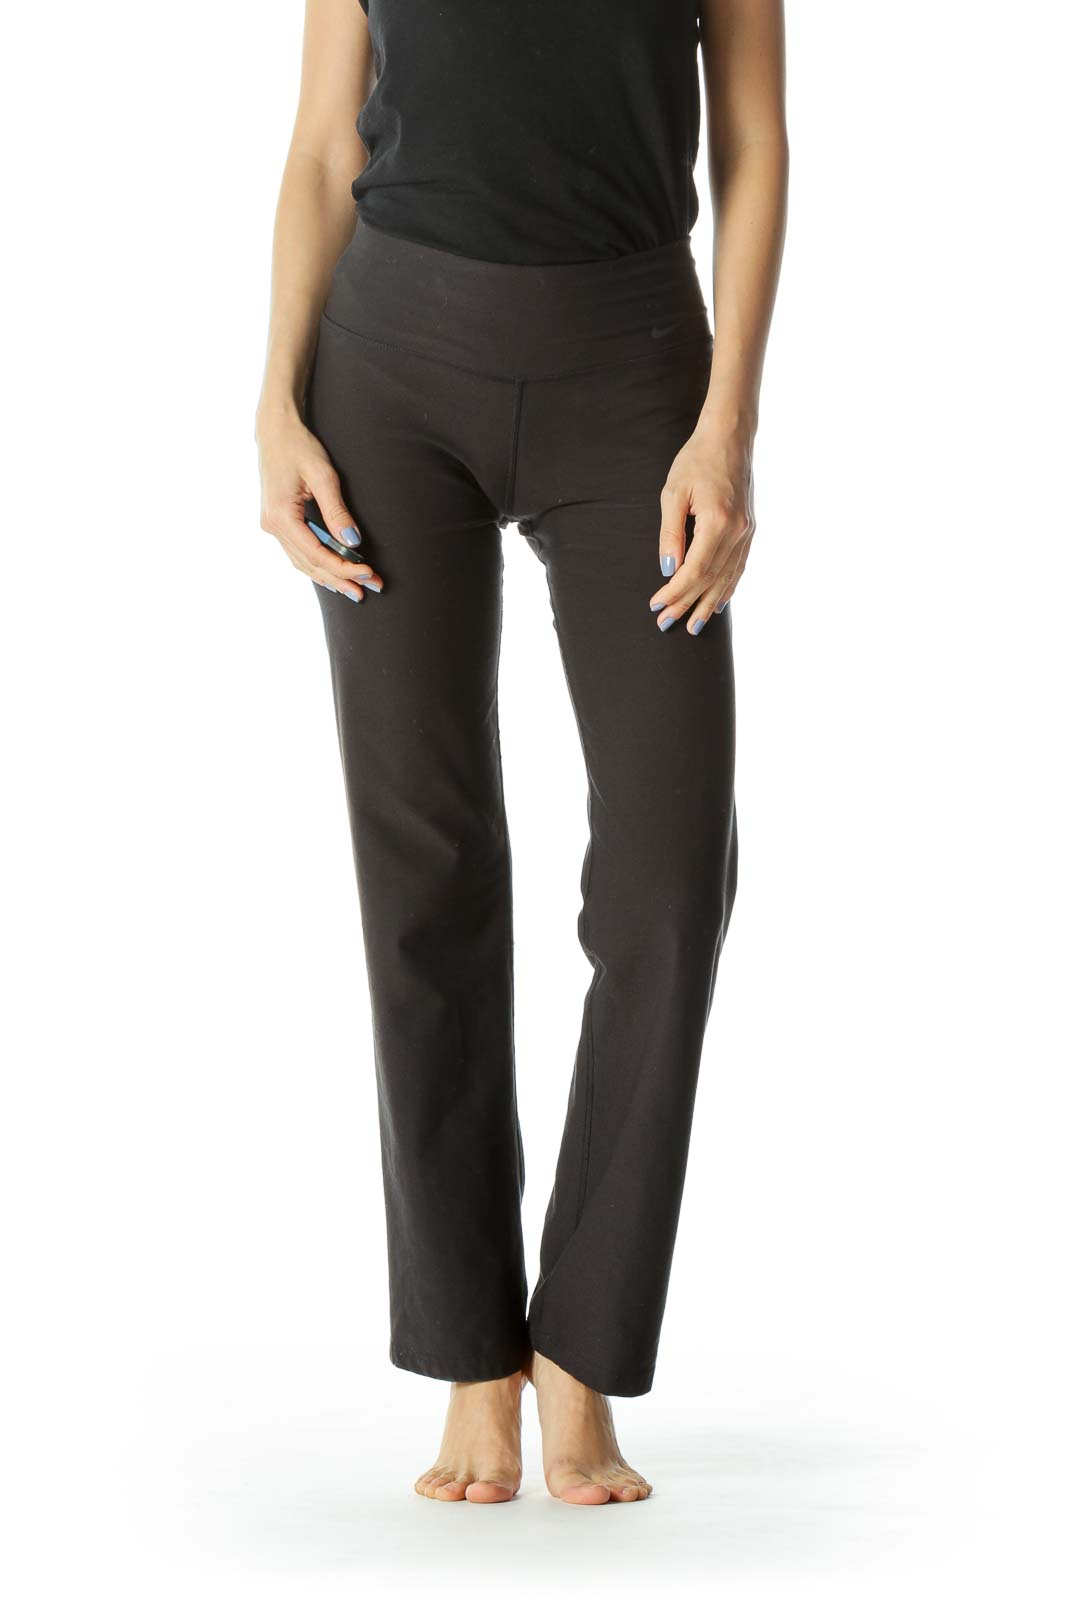 Black Stretch Activewear Pants